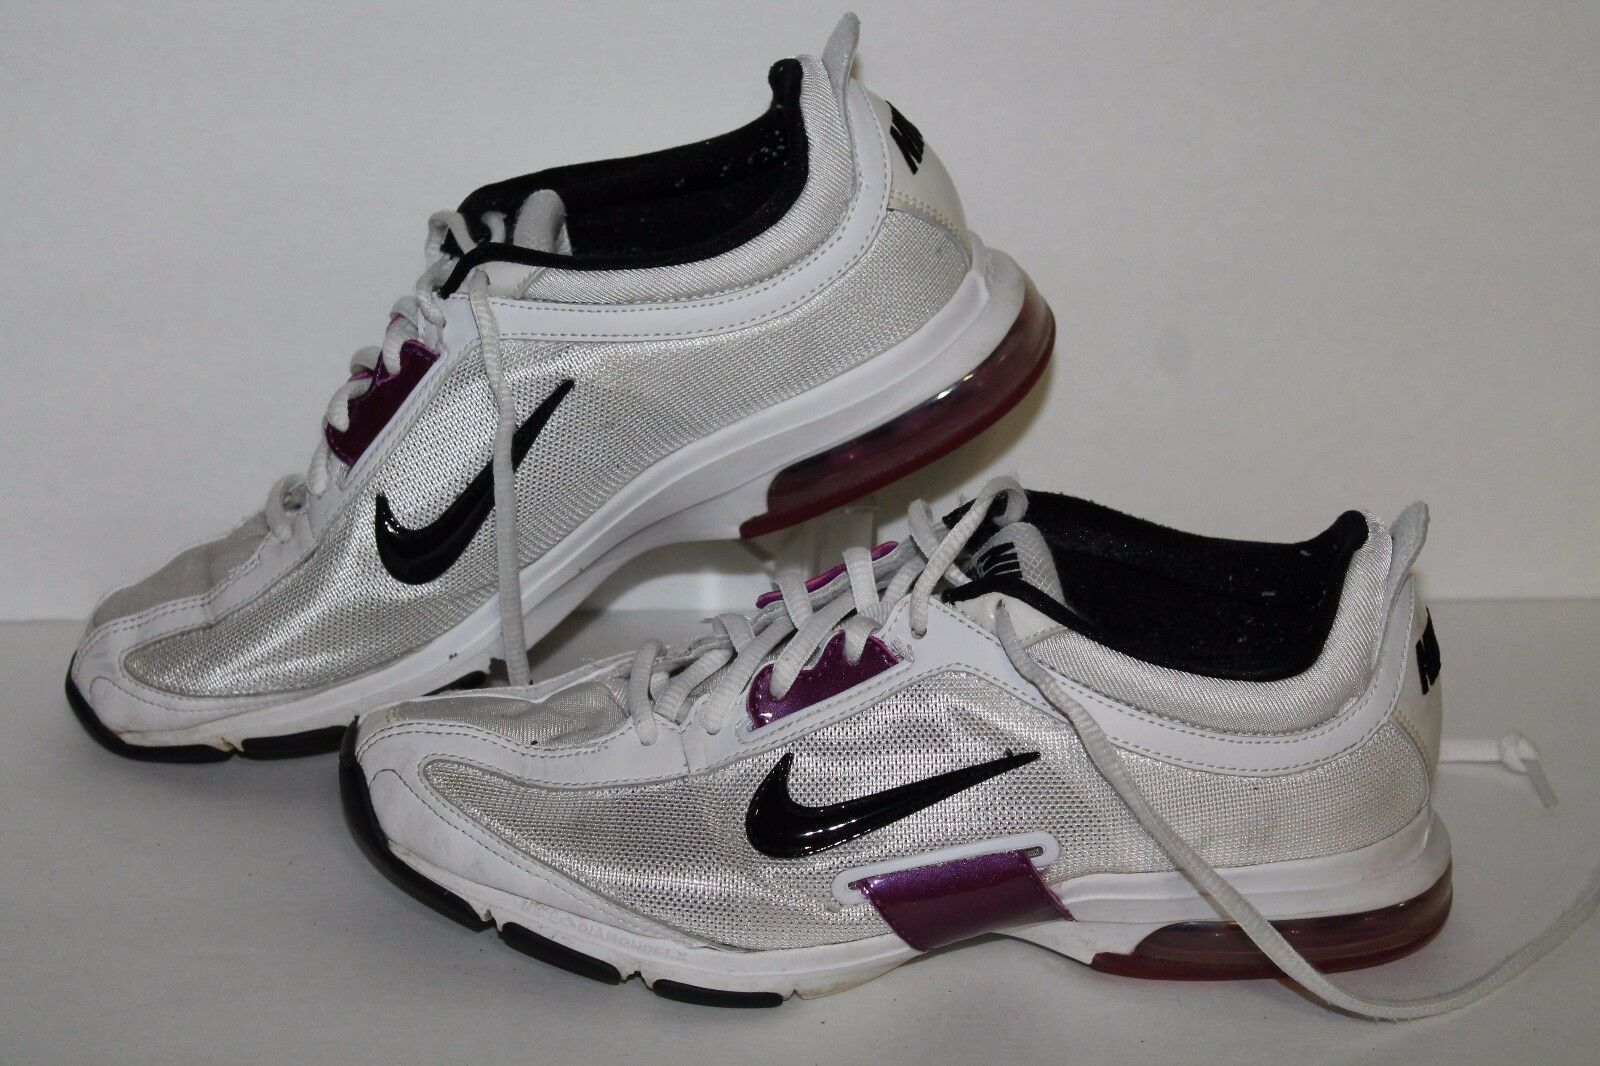 Nike Air Essential Trainer Running Shoes, Wht/Ppl/Blk, Women's 8.5 Comfortable and good-looking